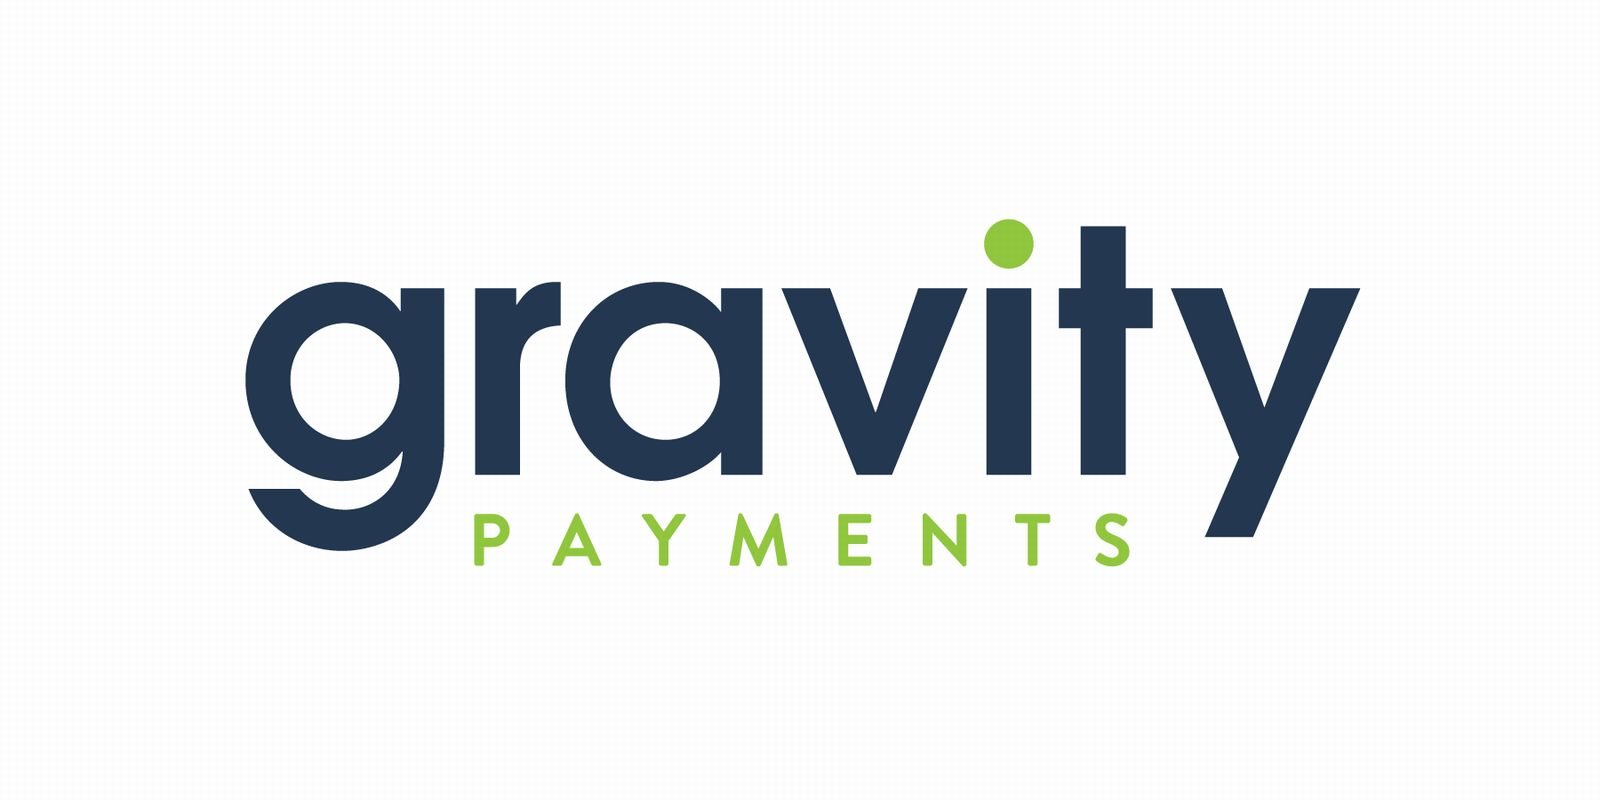 Gravity-payments-logo.jpg